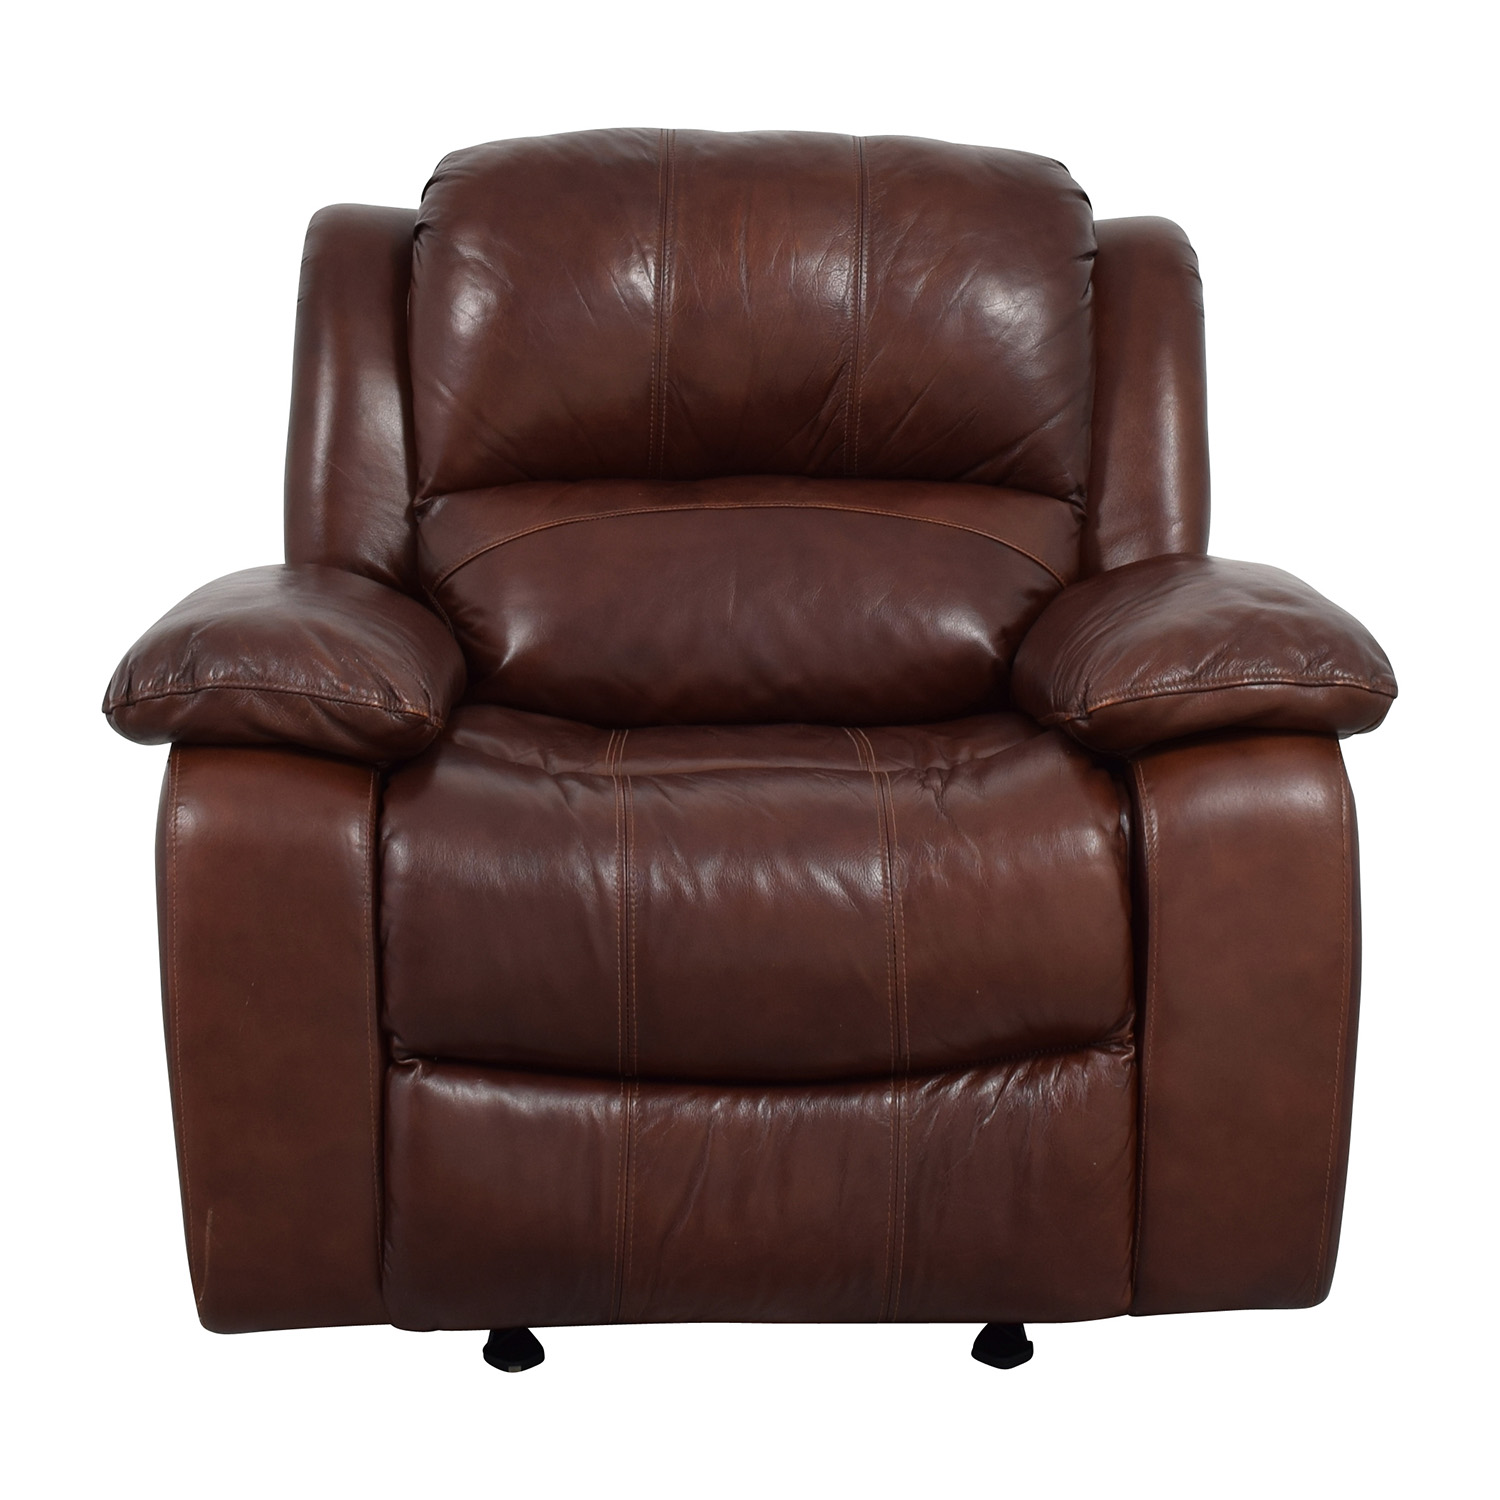 Raymour And Flanigan Bryant Ii Leather Glider Recliner